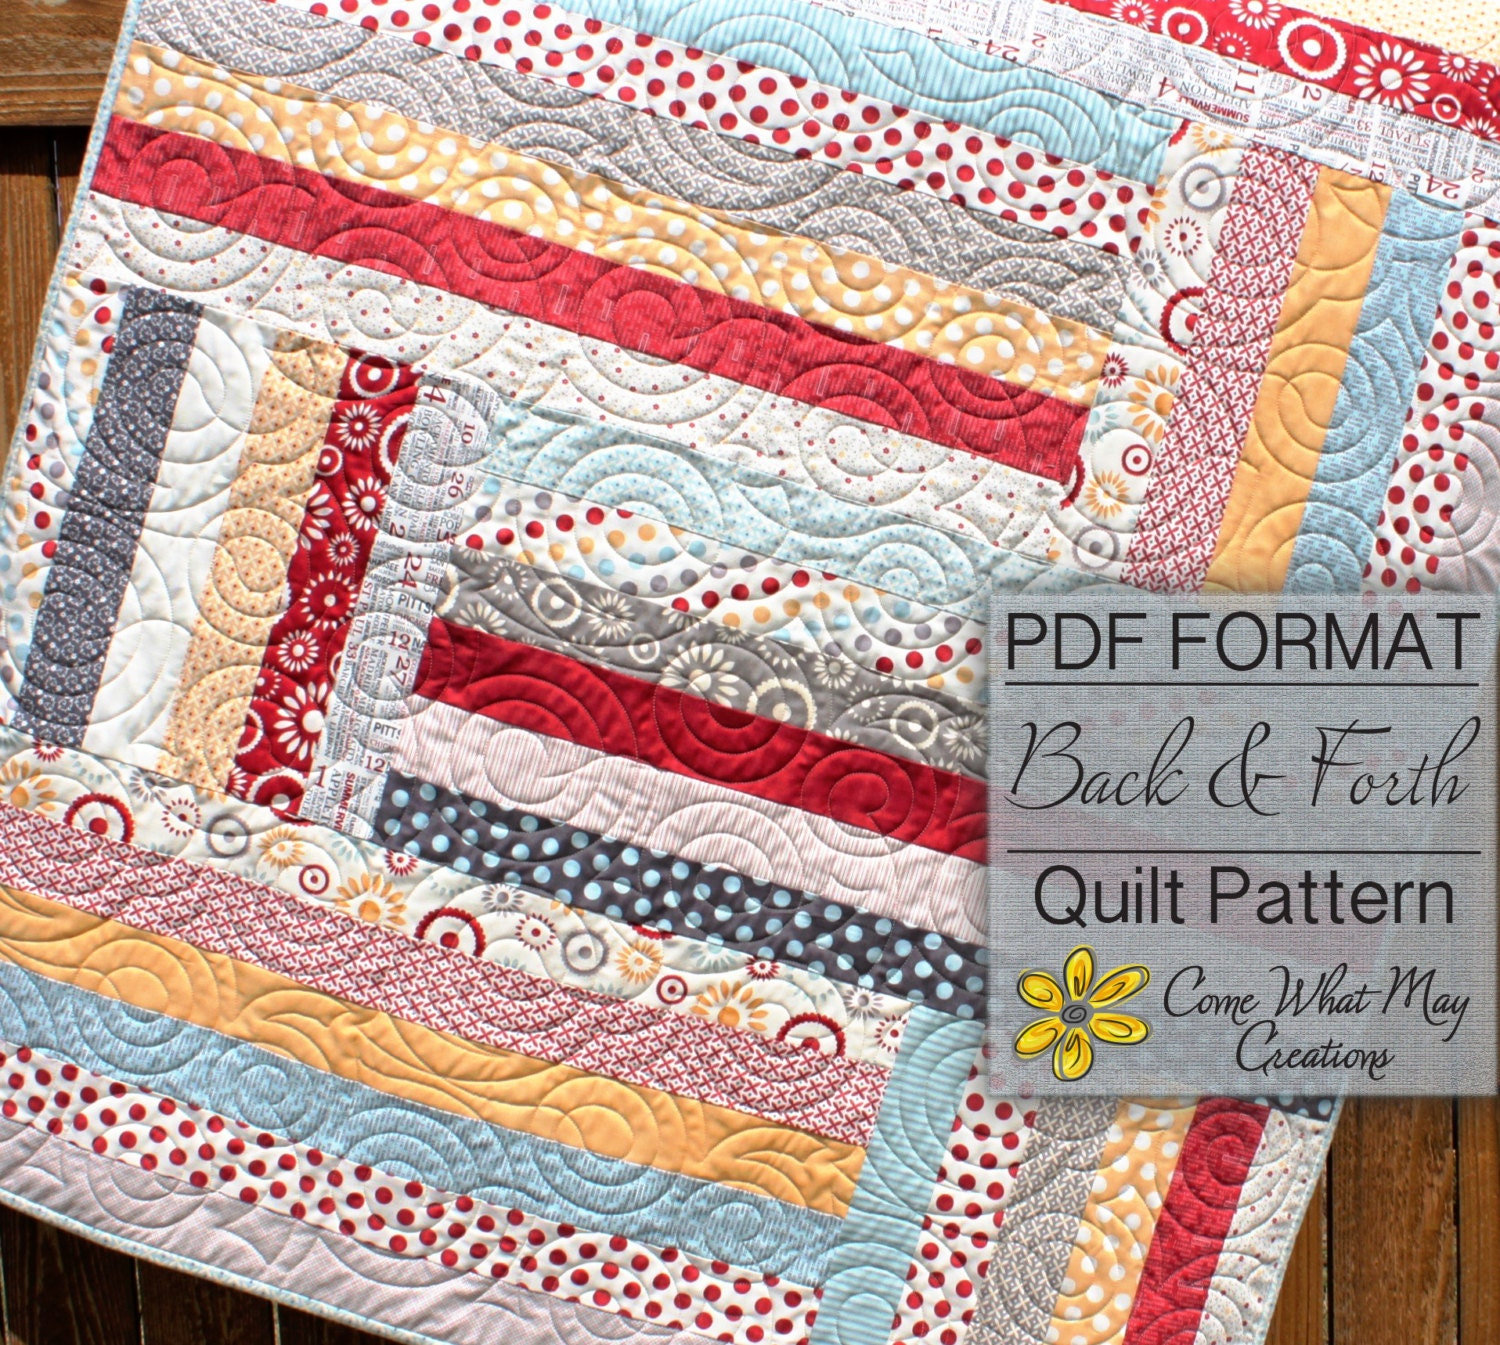 Baby Quilt Pattern Jelly Roll Quilt Pattern Back & Forth : how to put together a quilt - Adamdwight.com